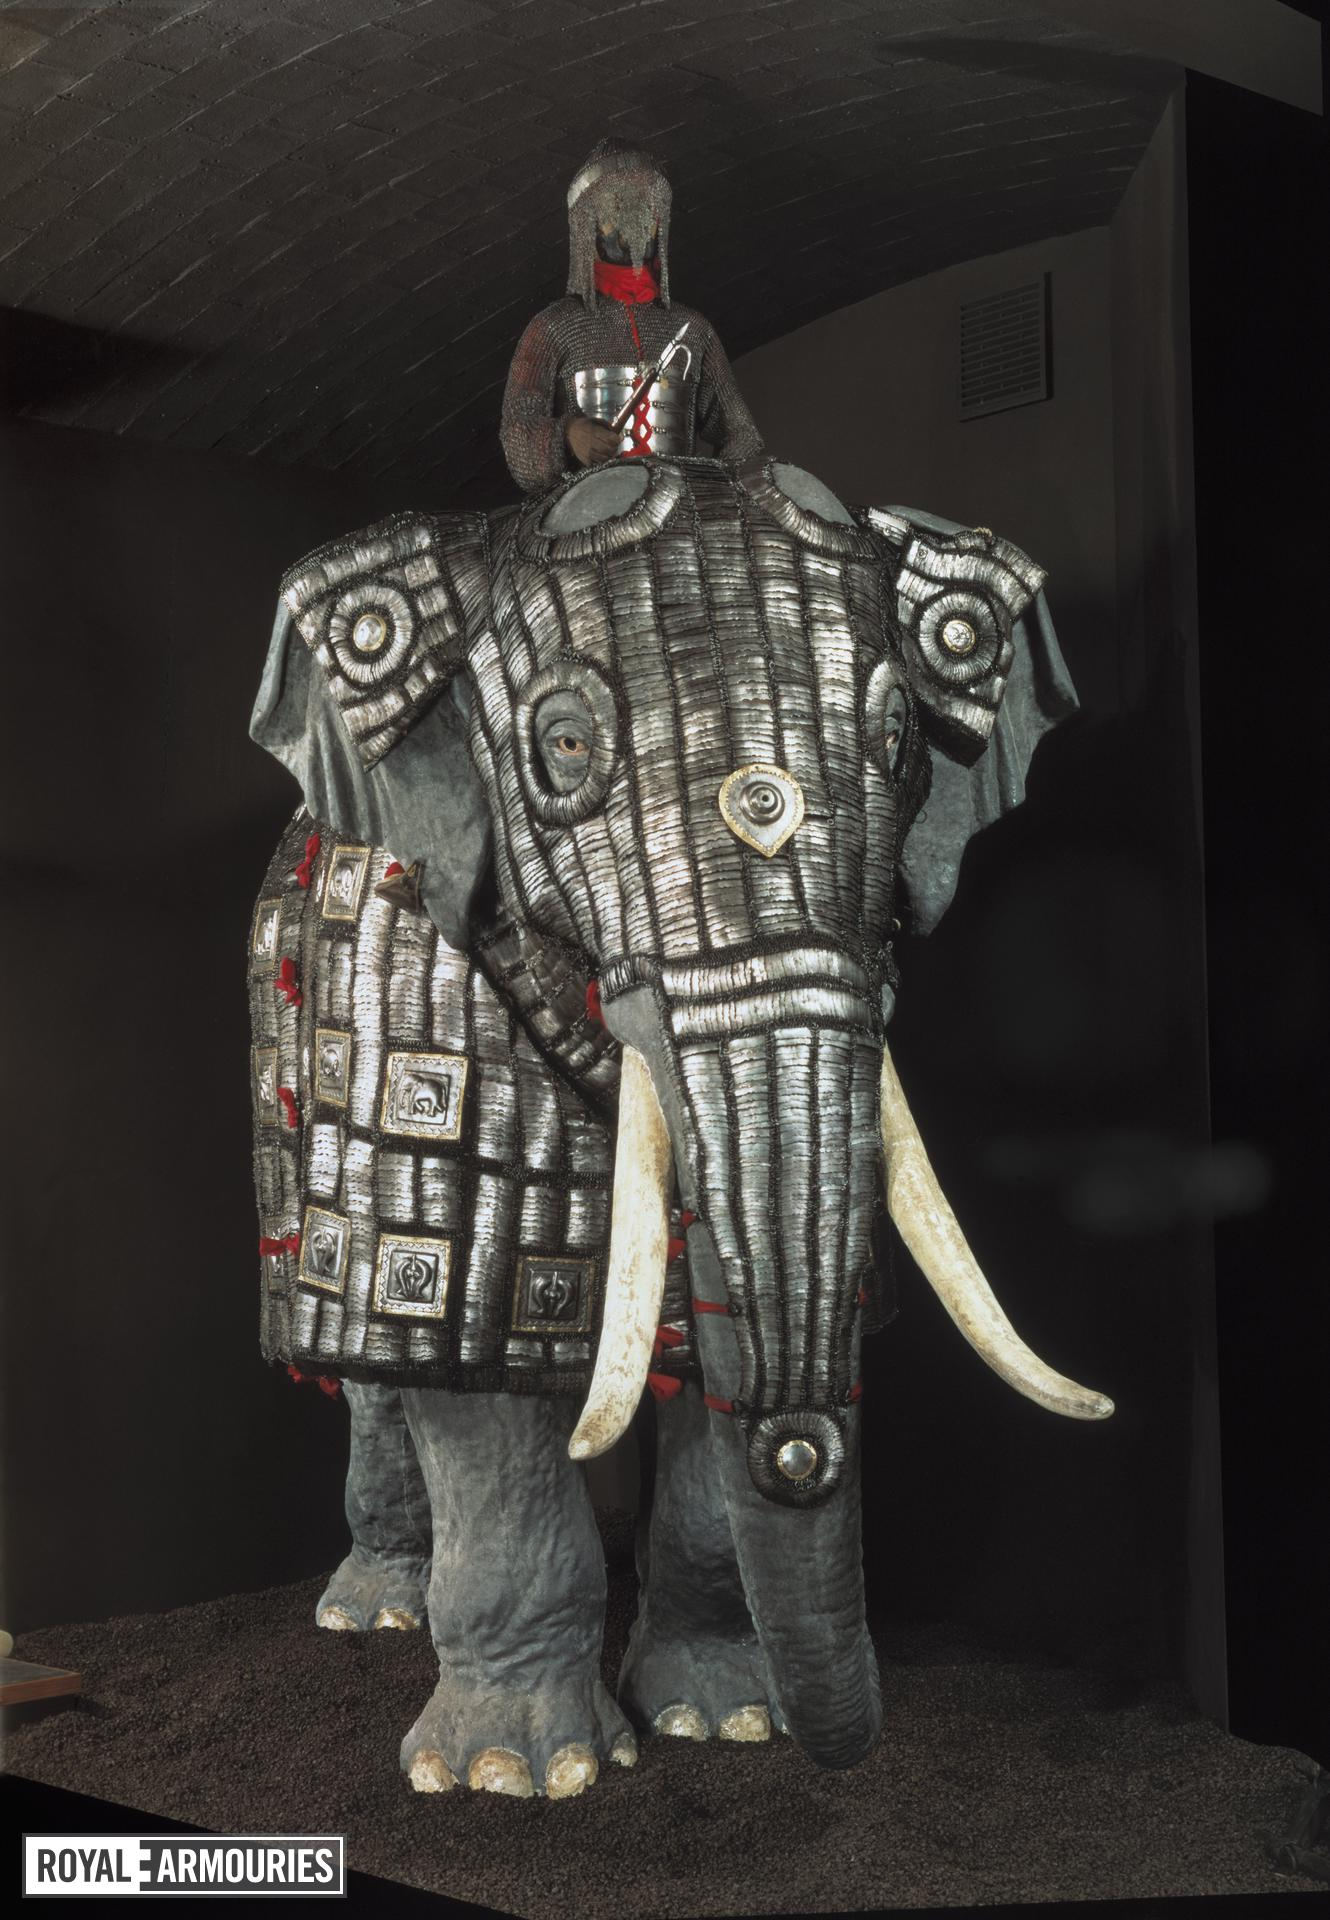 Elephant armour (bargustavan-i-pil)